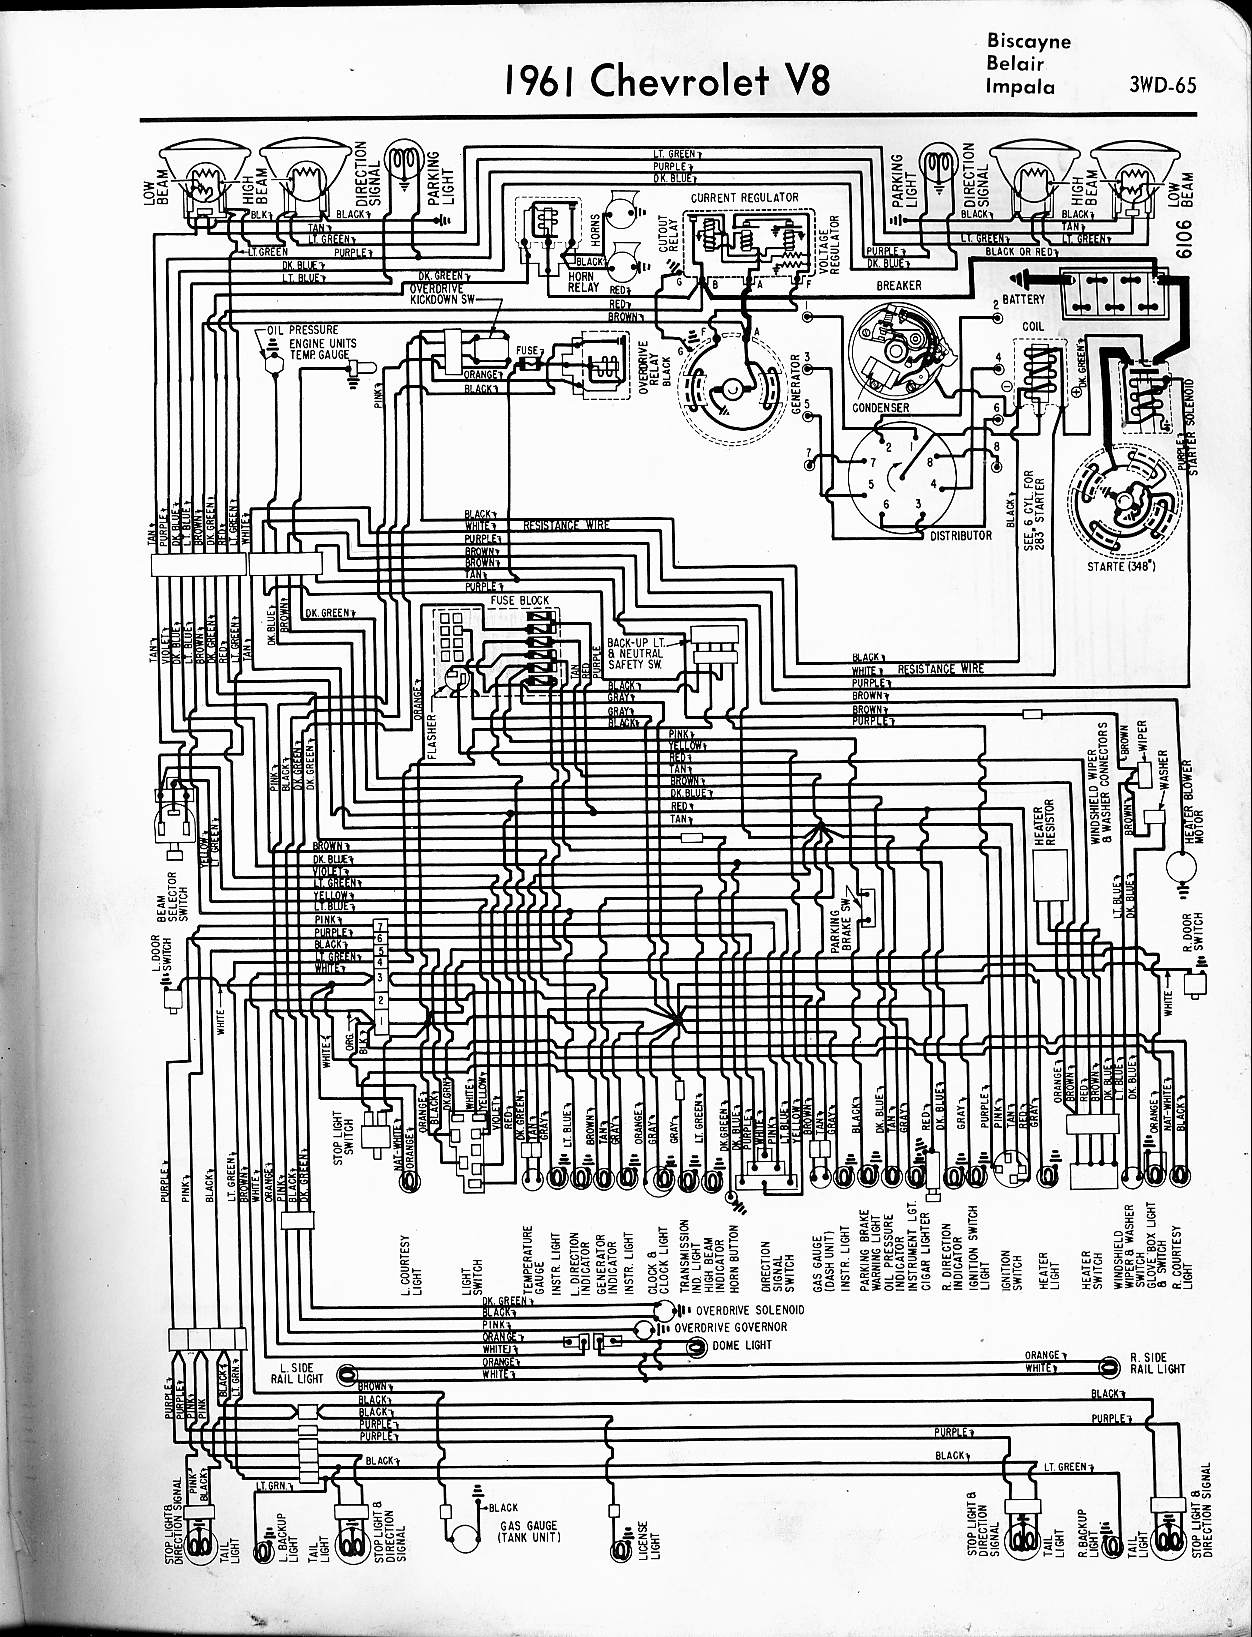 71 chevy suburban wiring diagram free picture 57 65 chevy wiring diagrams #12